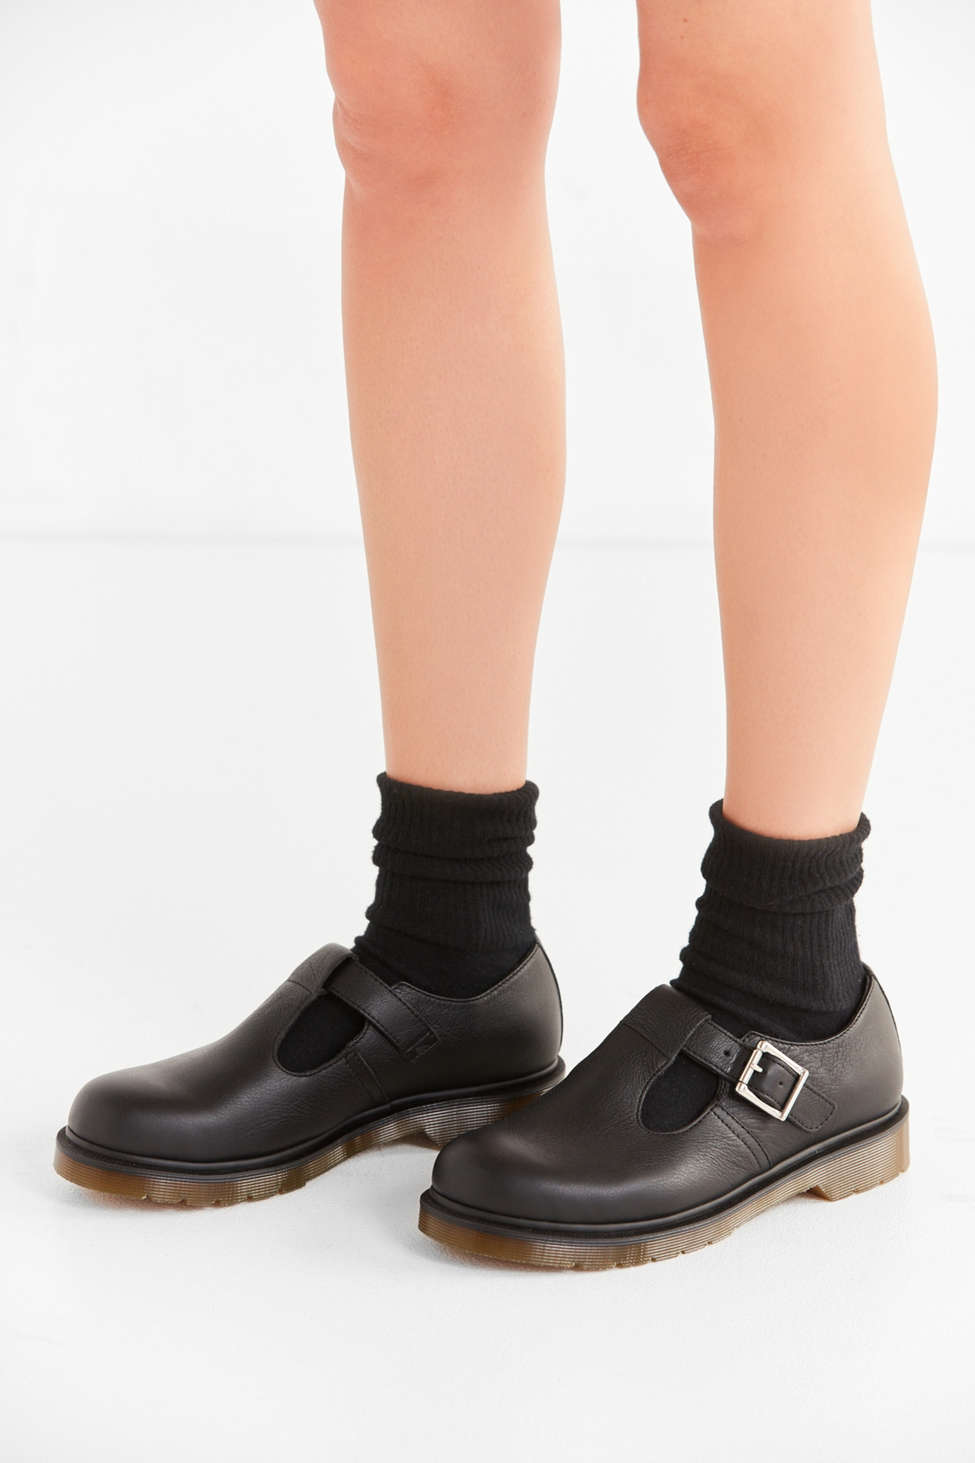 Dr. Martens Polley T-Bar Mary Jane (Women's)